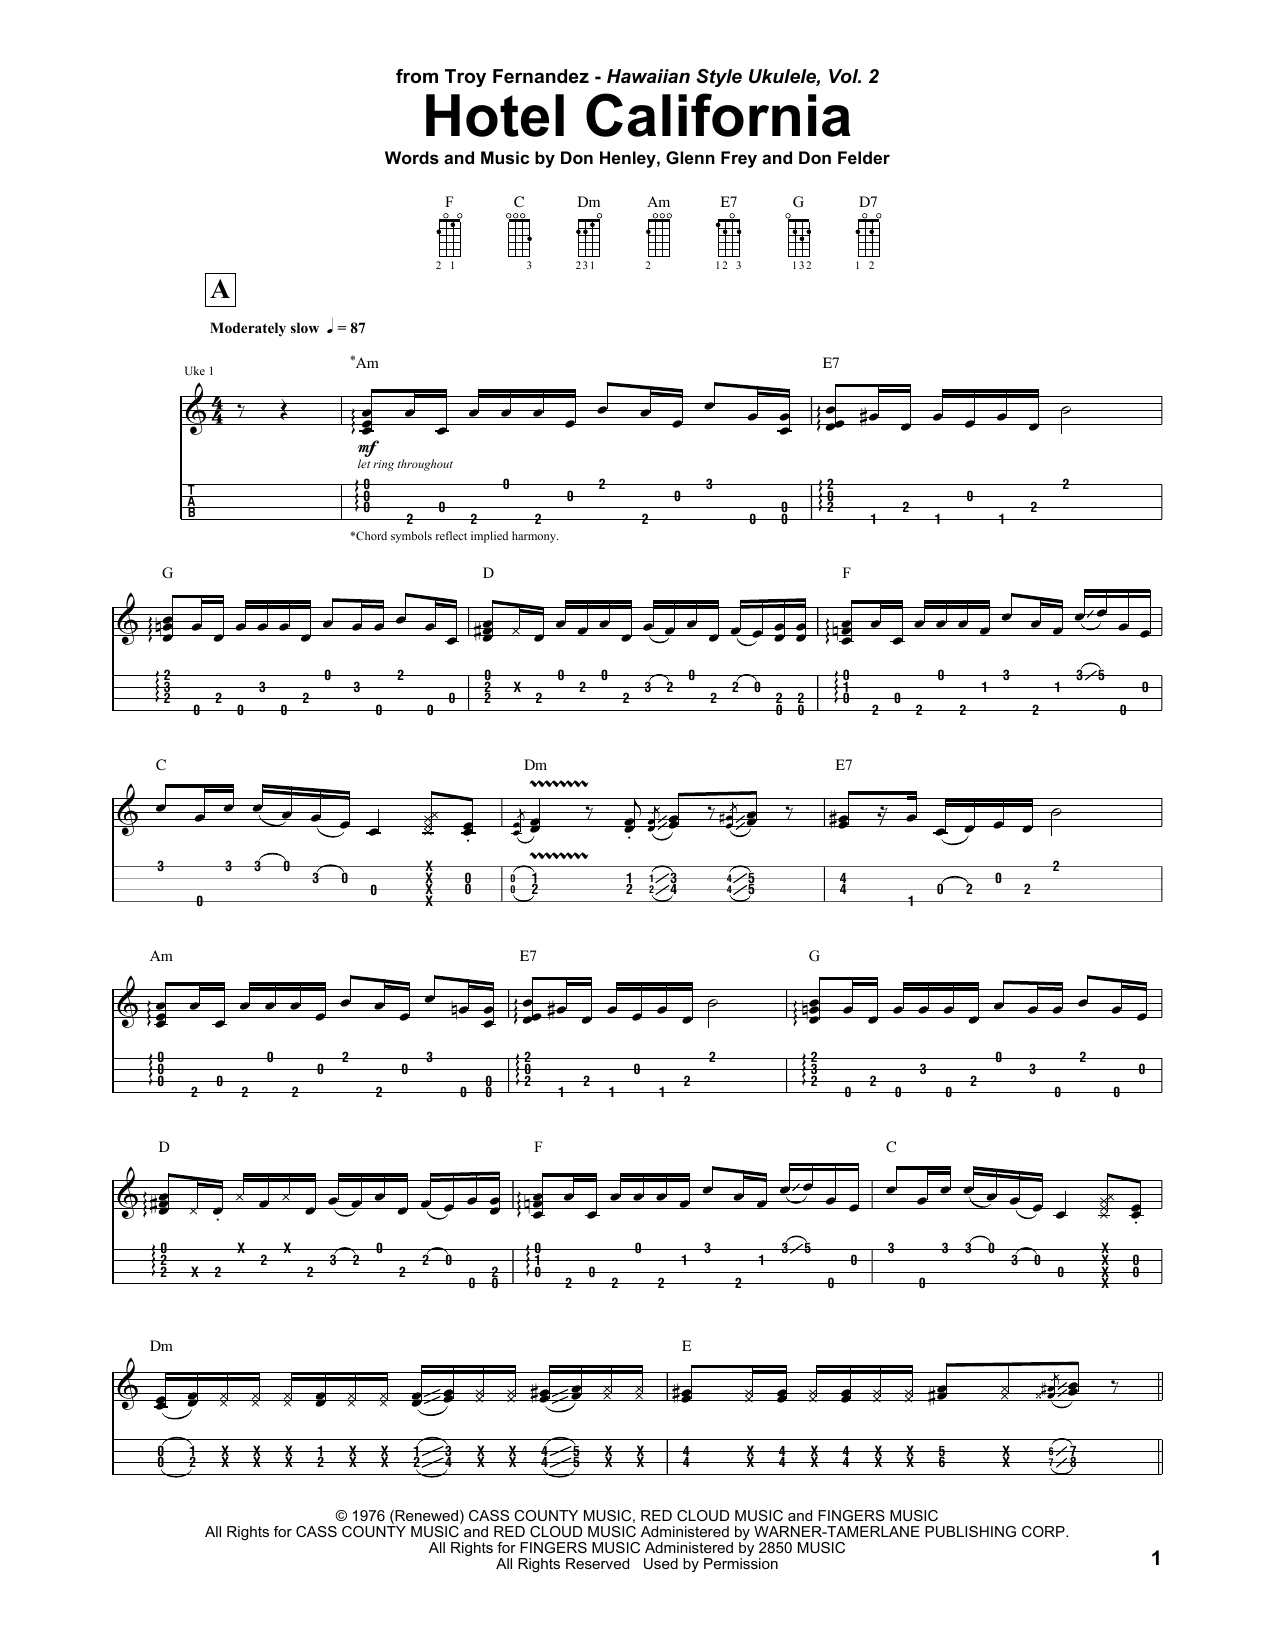 Troy Fernandez Hotel California sheet music notes and chords. Download Printable PDF.